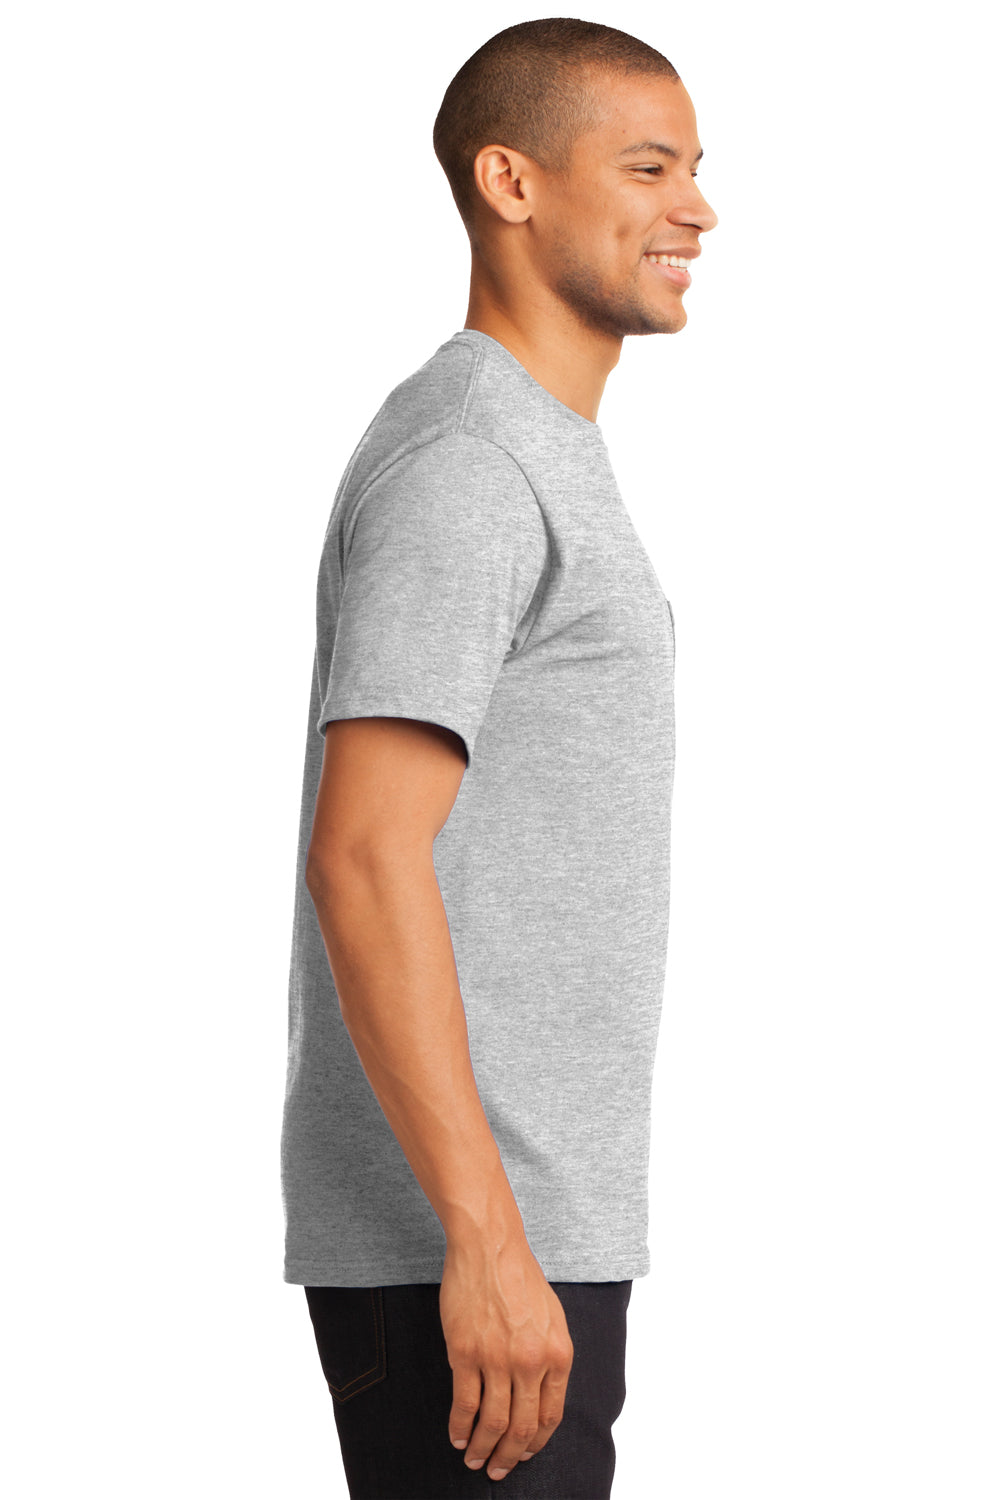 Port & Company PC61P Mens Essential Short Sleeve Crewneck T-Shirt w/ Pocket Ash Grey Side